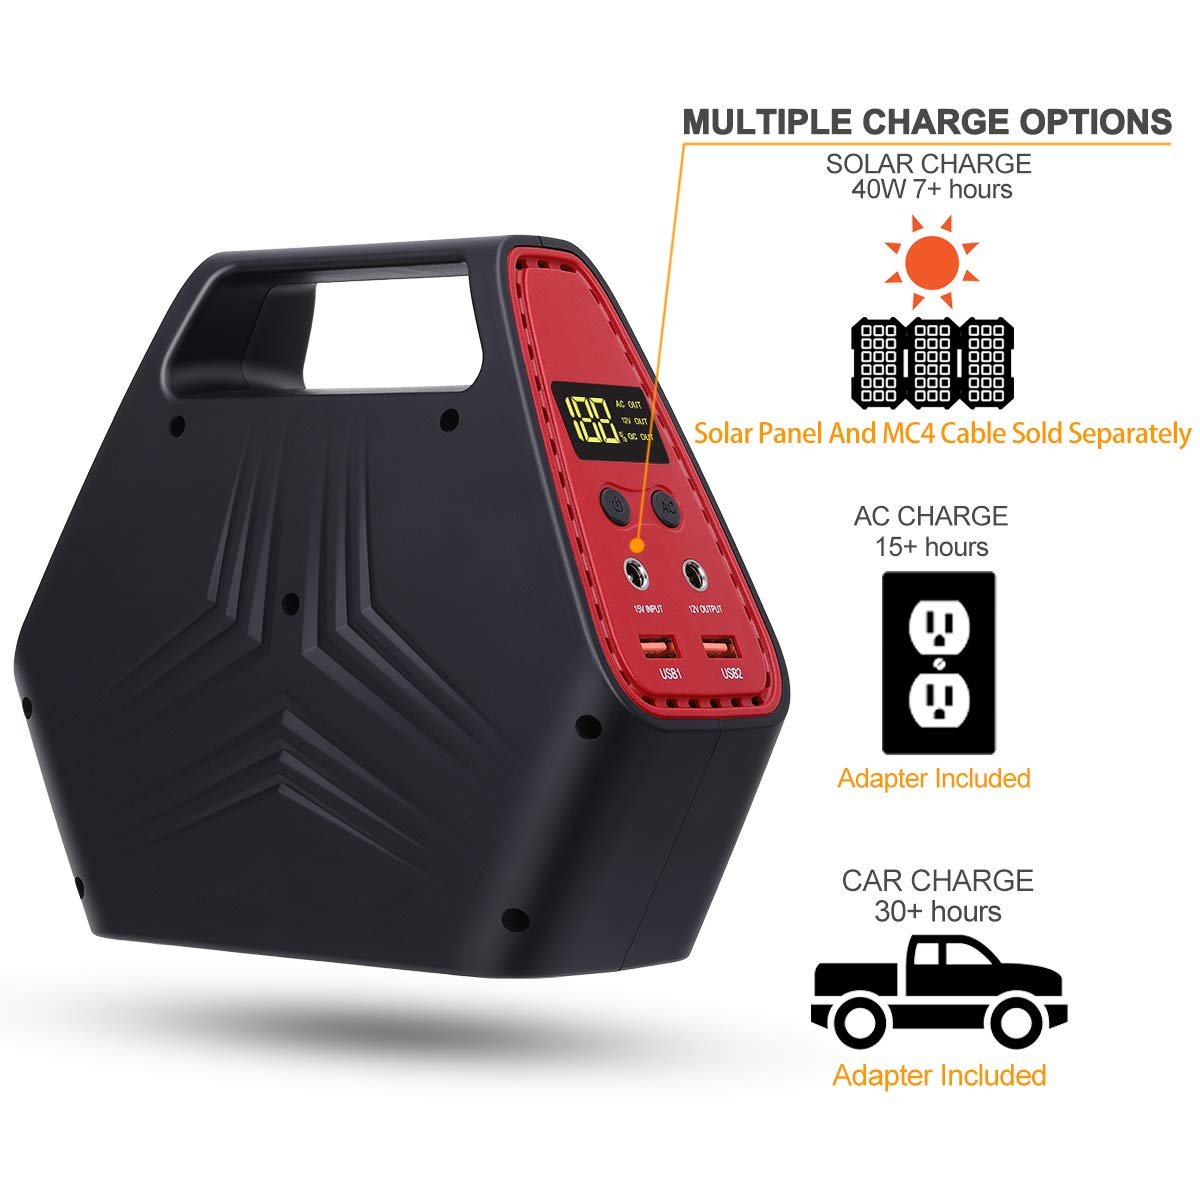 AWANFI 146Wh Portable Power Station, Quiet Gas-Free Battery Powered Generator with Dual 110V AC Outlet, 12V Output and Dual USB Quick Charge Port for Camping Tailgating Emergency Power Supply by AWANFI (Image #4)